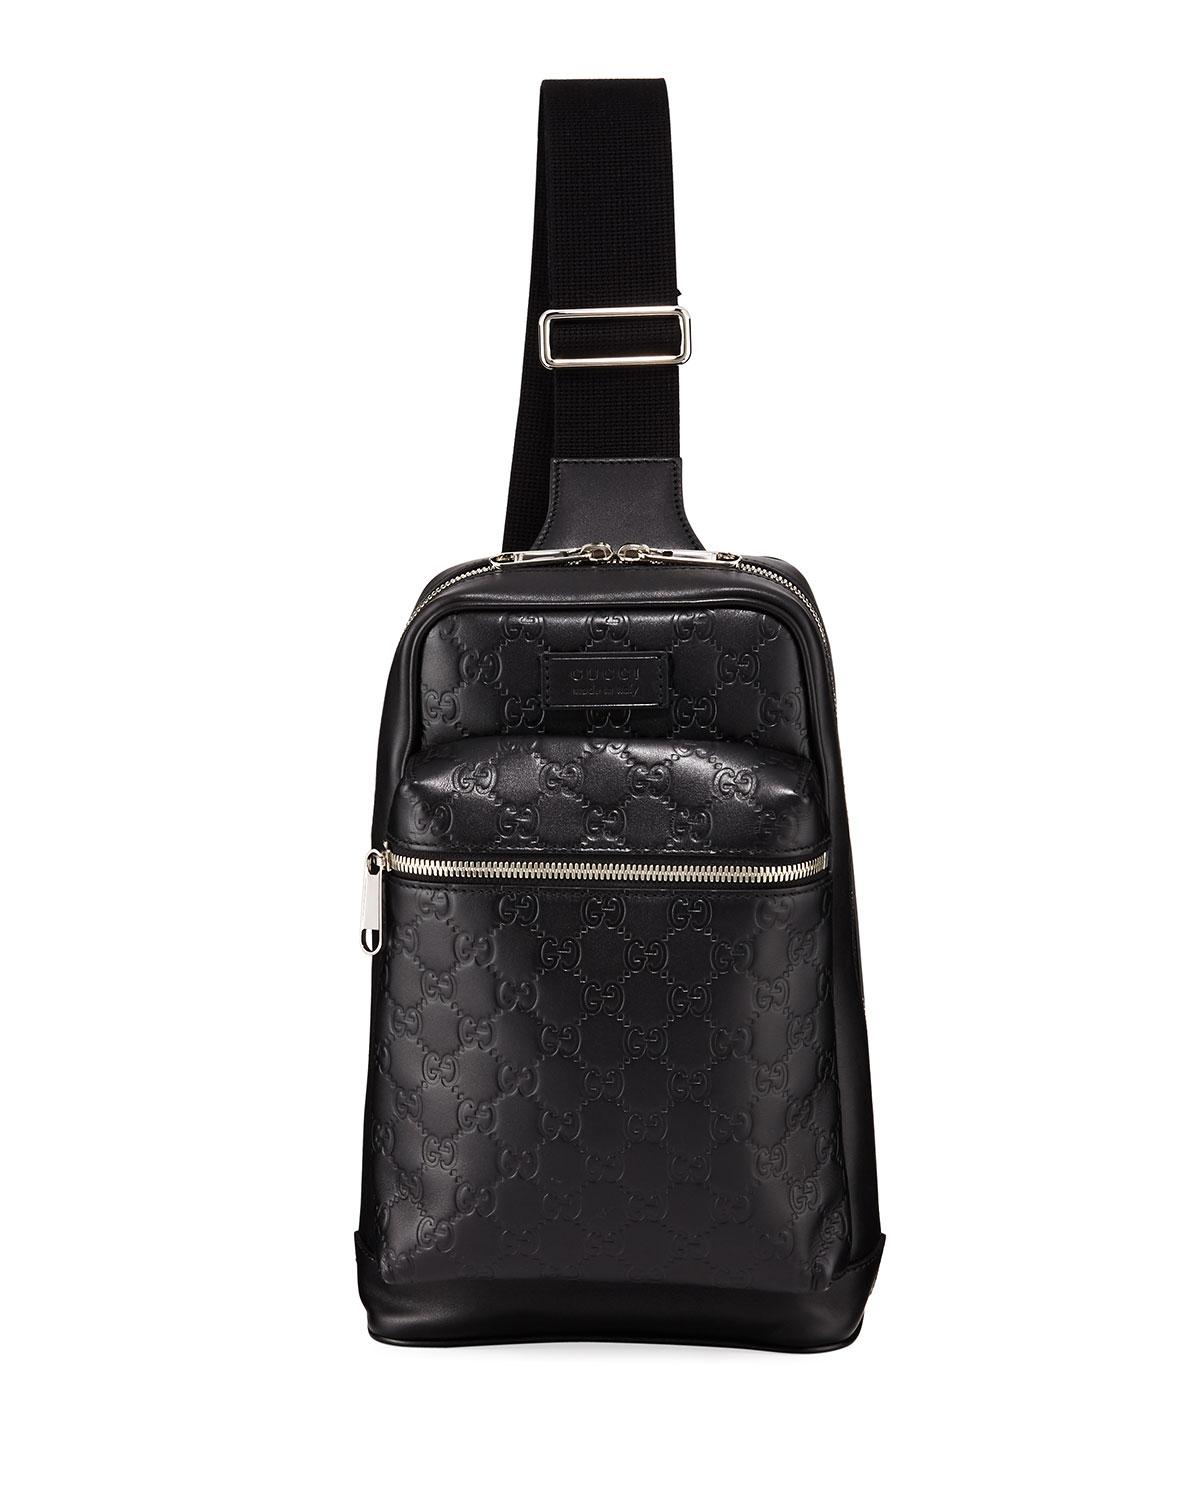 e10e860dfd54 Gucci Men's GG Leather Crossbody Backpack in Black for Men - Lyst